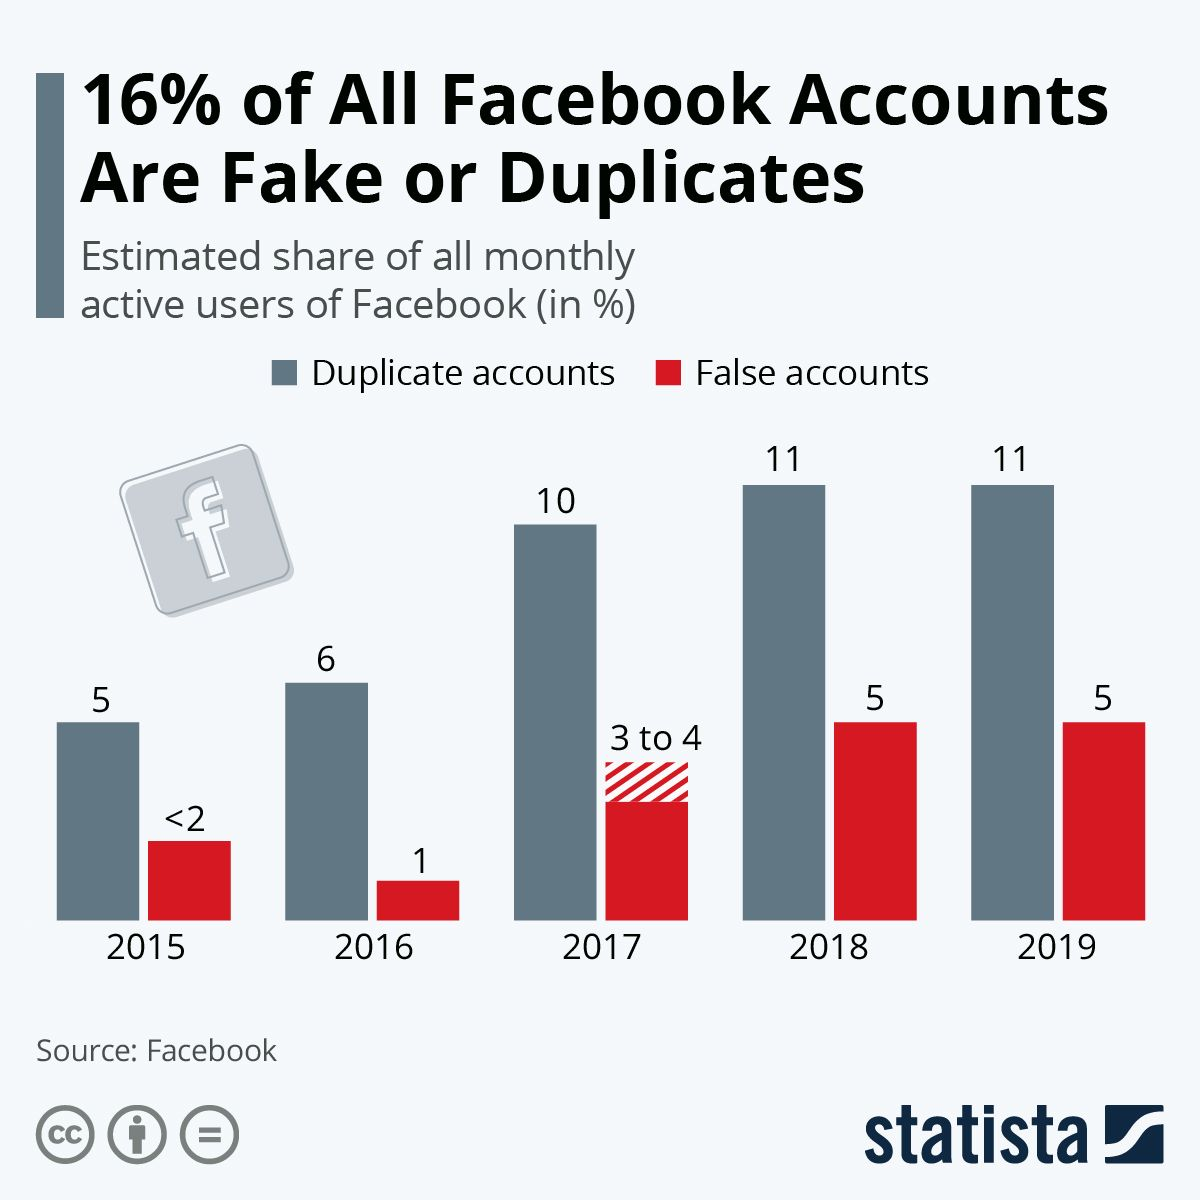 16 of all facebook accounts are fake or duplicates in